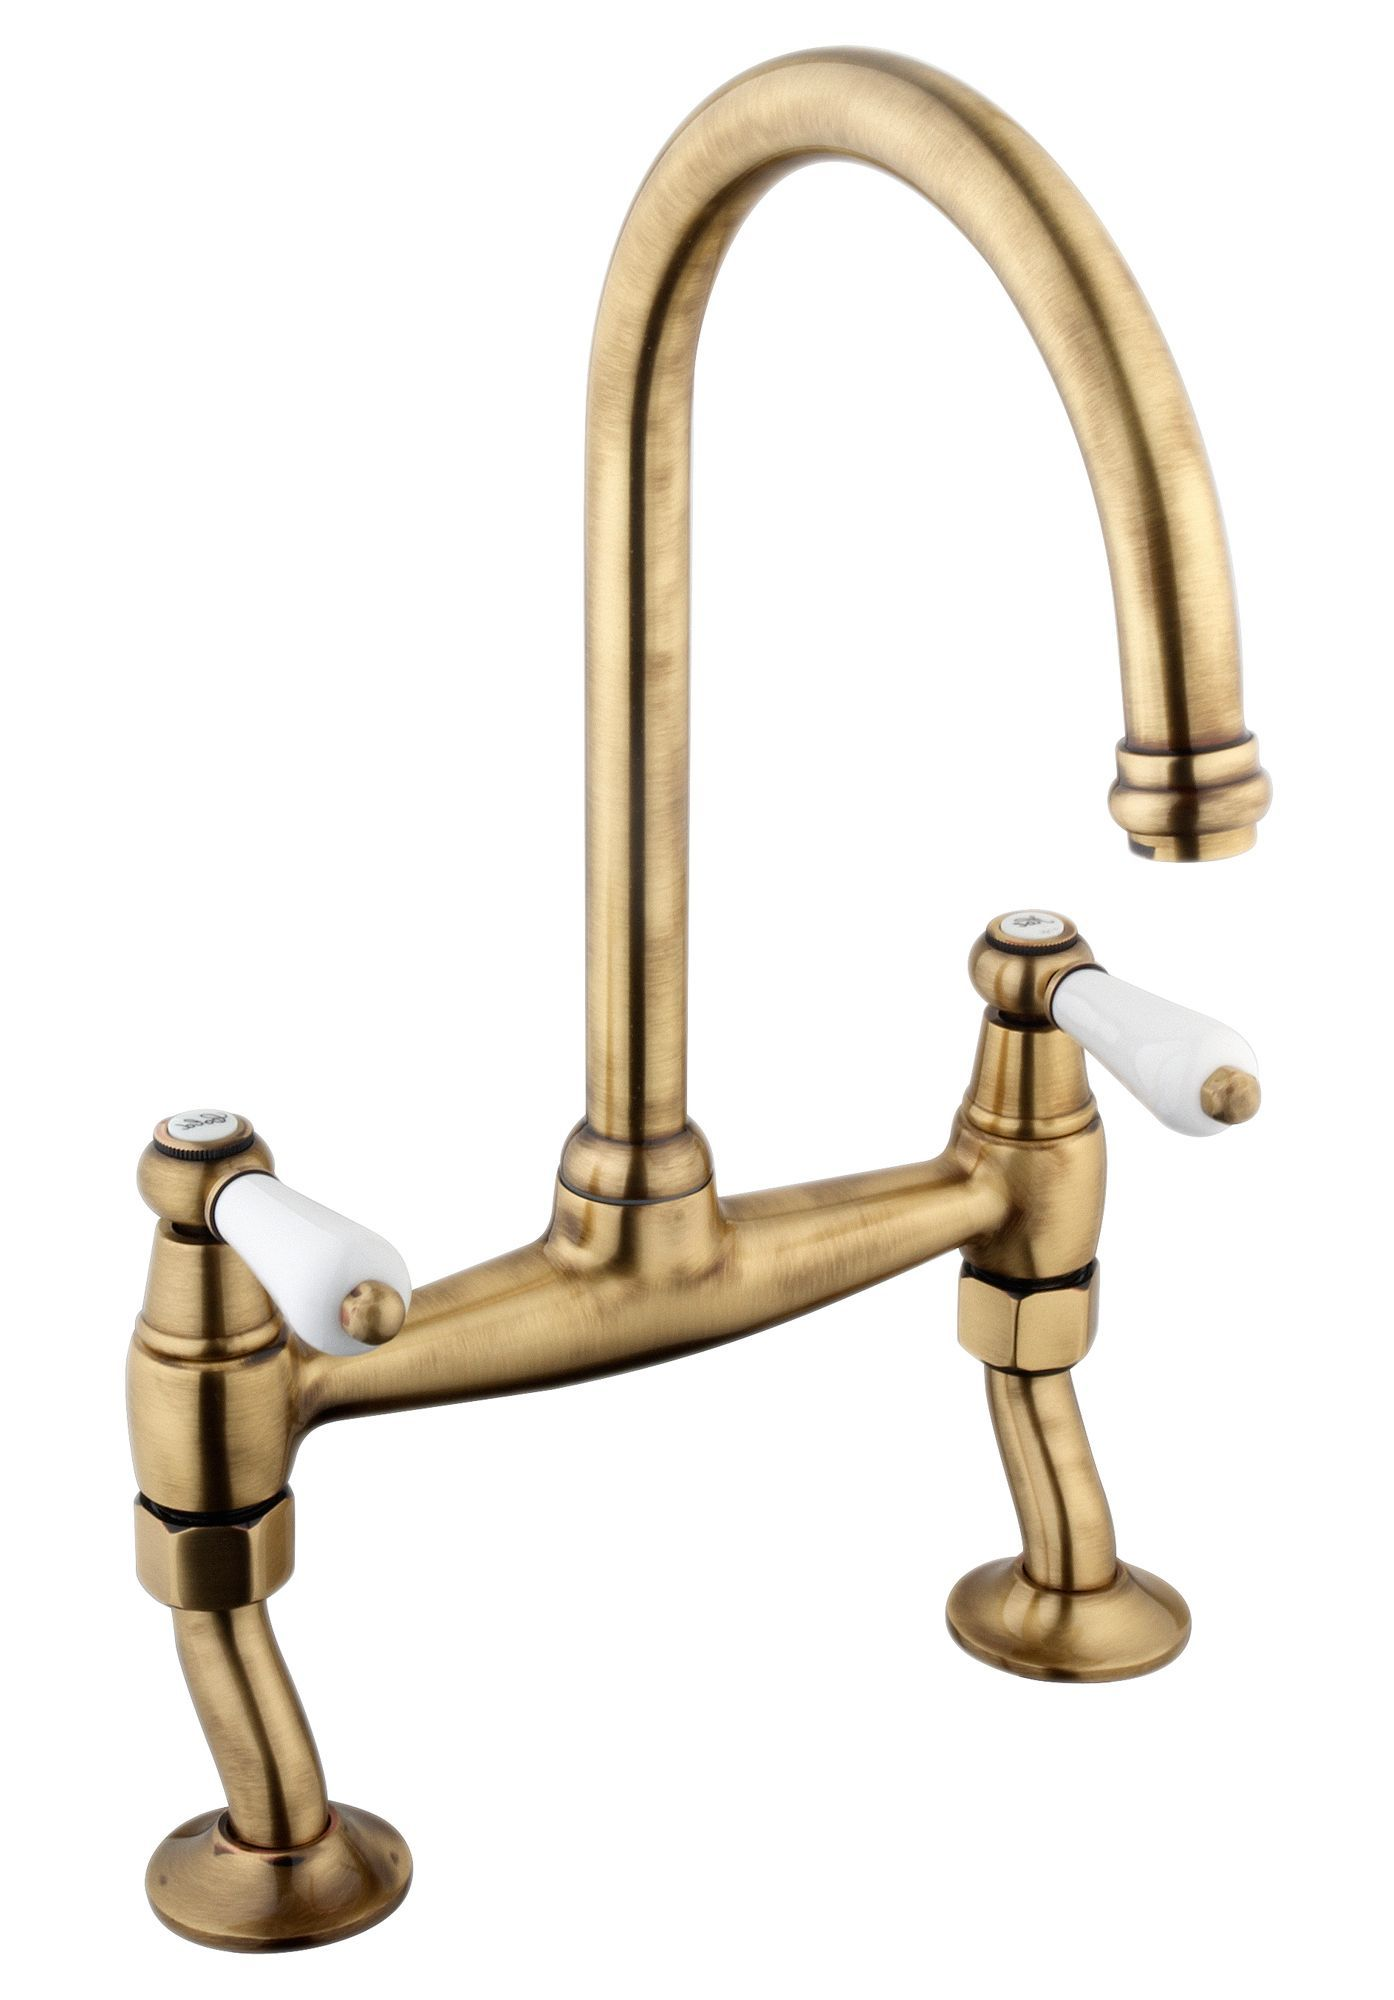 Cooke & Lewis Chambley Antique Brass Effect Bridge Mixer Tap ...